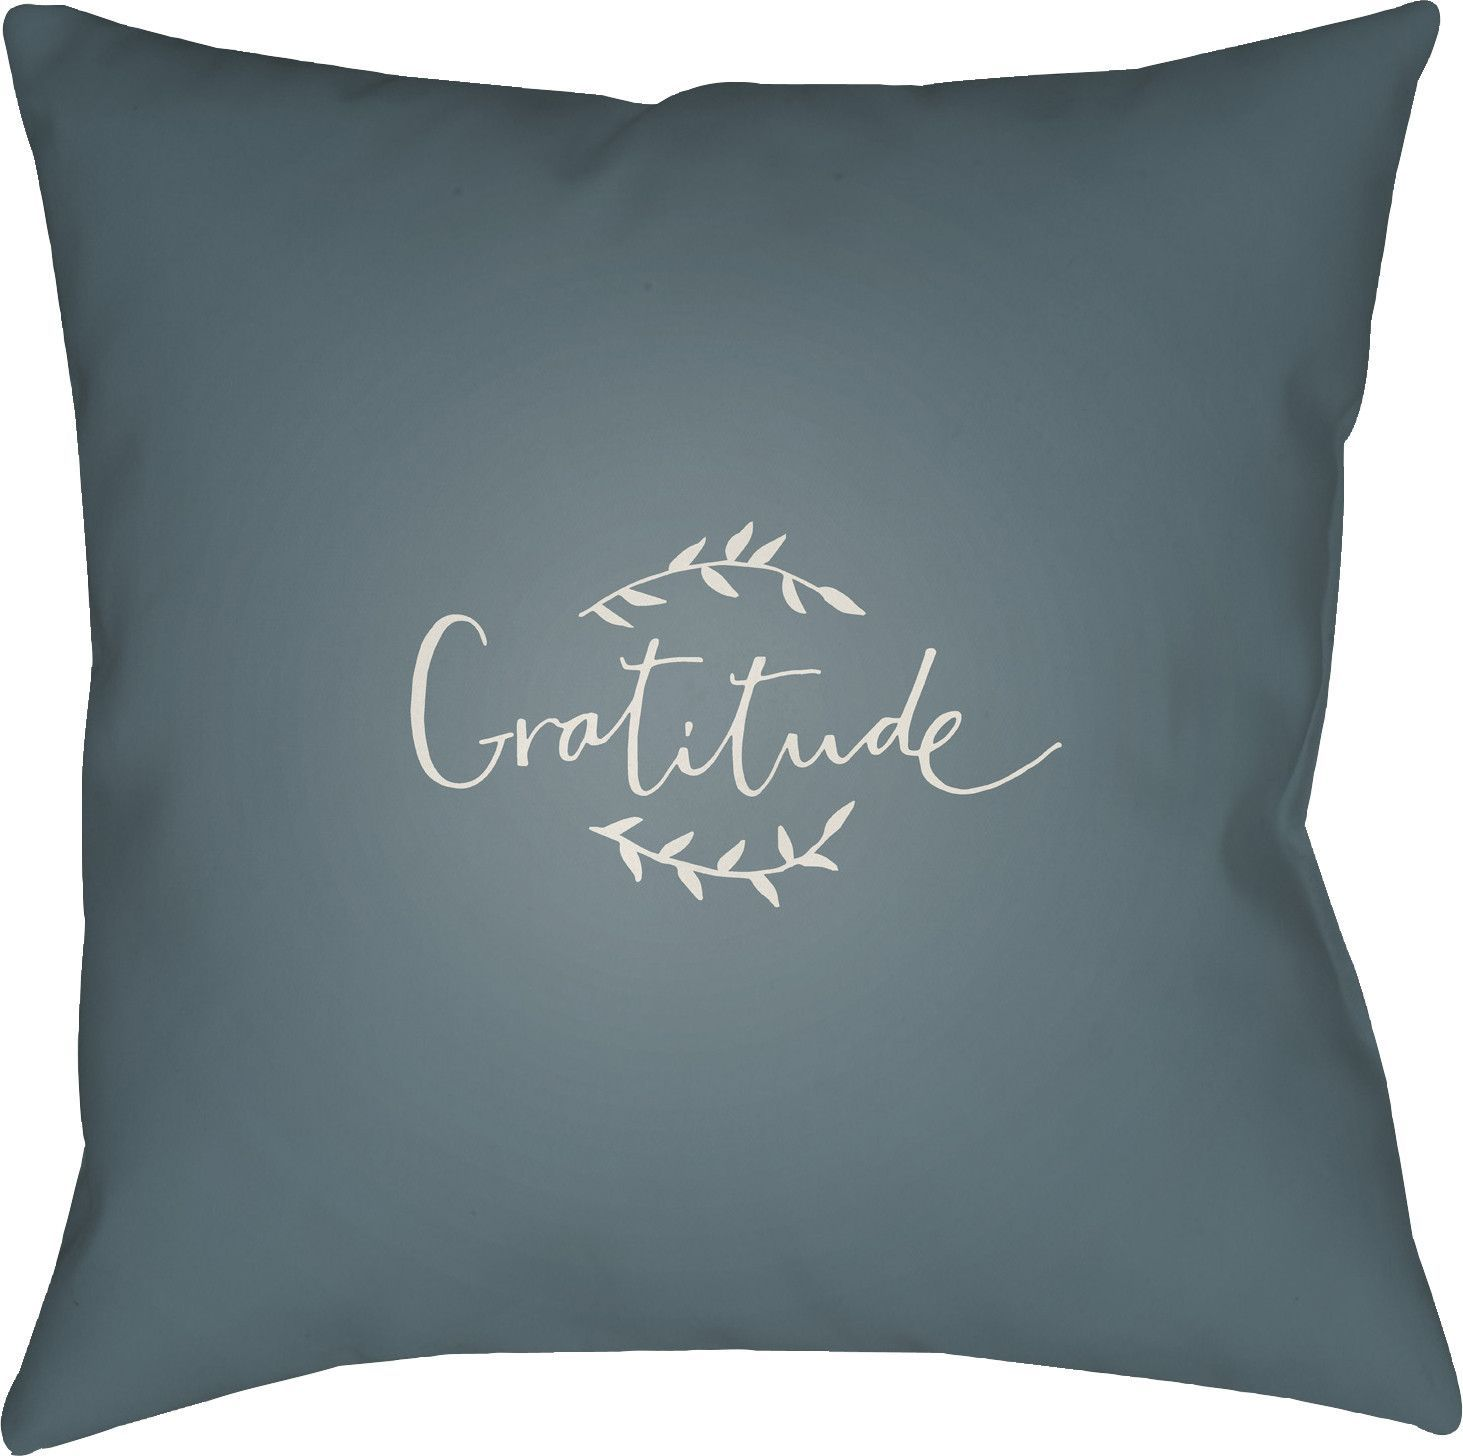 Gratitude Indoor/Outdoor Throw Pillow